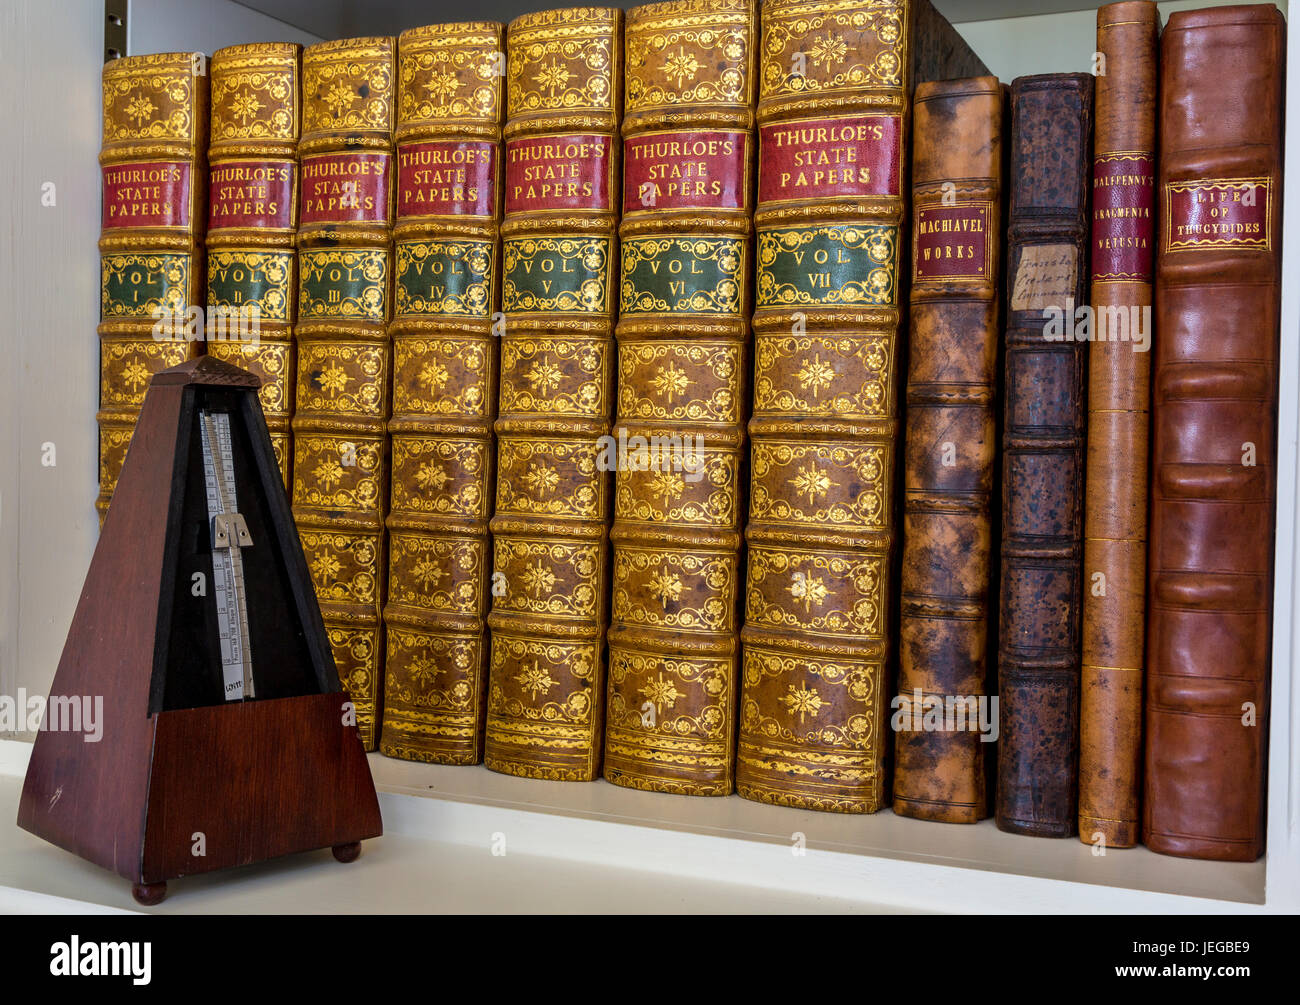 Yorkshire, England, UK.  Antiquarian Books in Library of a Country Estate.  Thurloe's State papers and metronome. - Stock Image